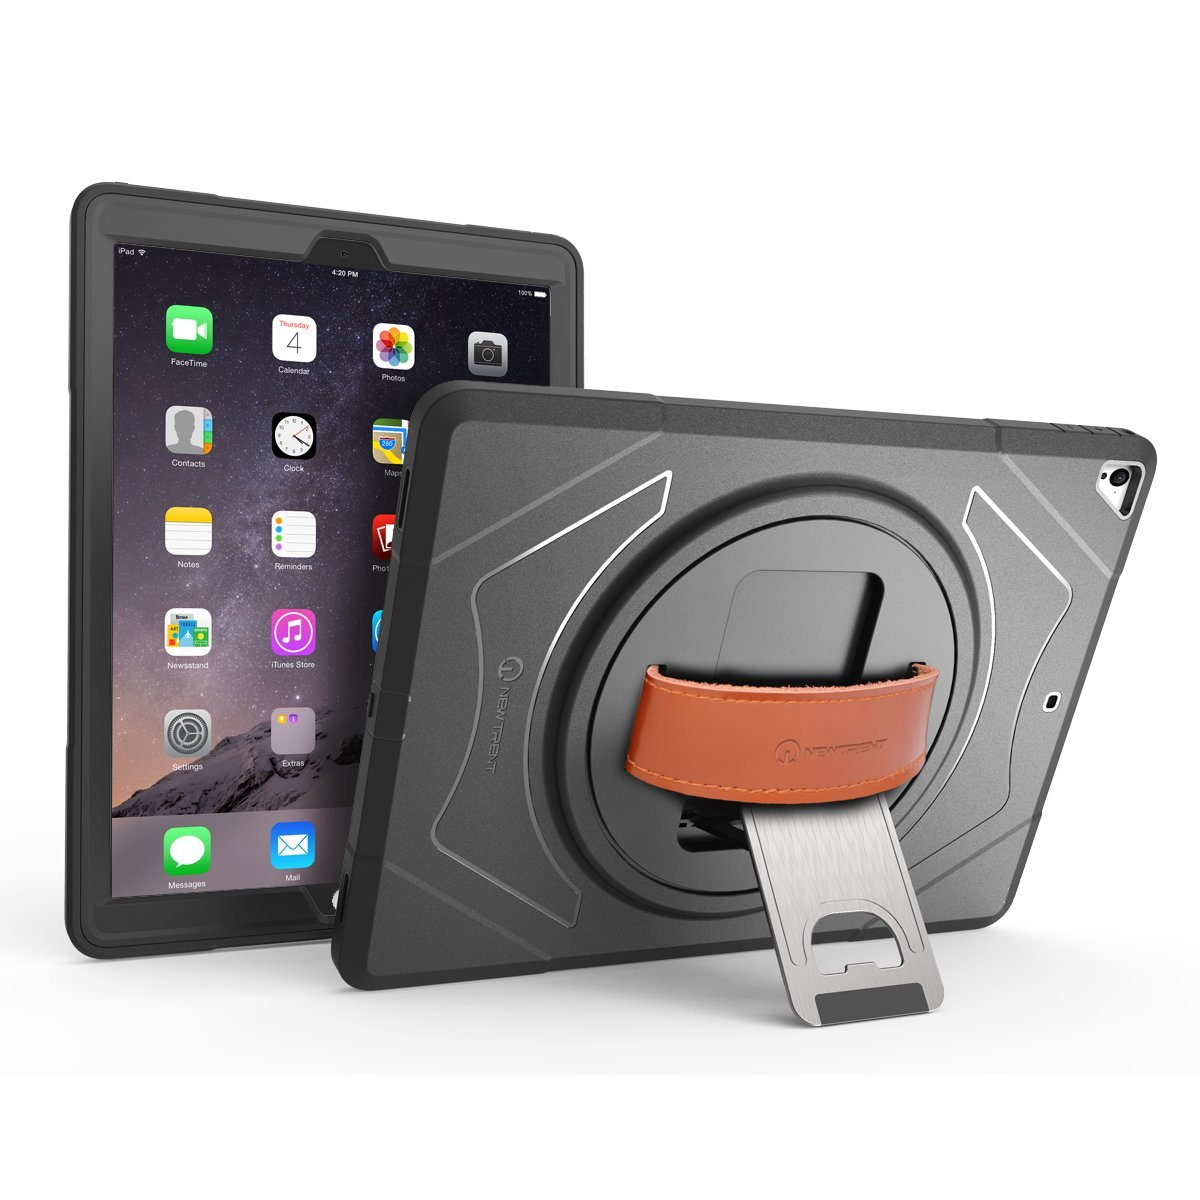 New Trent iPad Case for iPad Pro 12.9, Heavy Duty Gladius Full-Body Rugged Protective Case with Built-in Screen Protector & Dual Layer Design for Apple iPad Pro 12.9 inch 1st and 2nd Generation